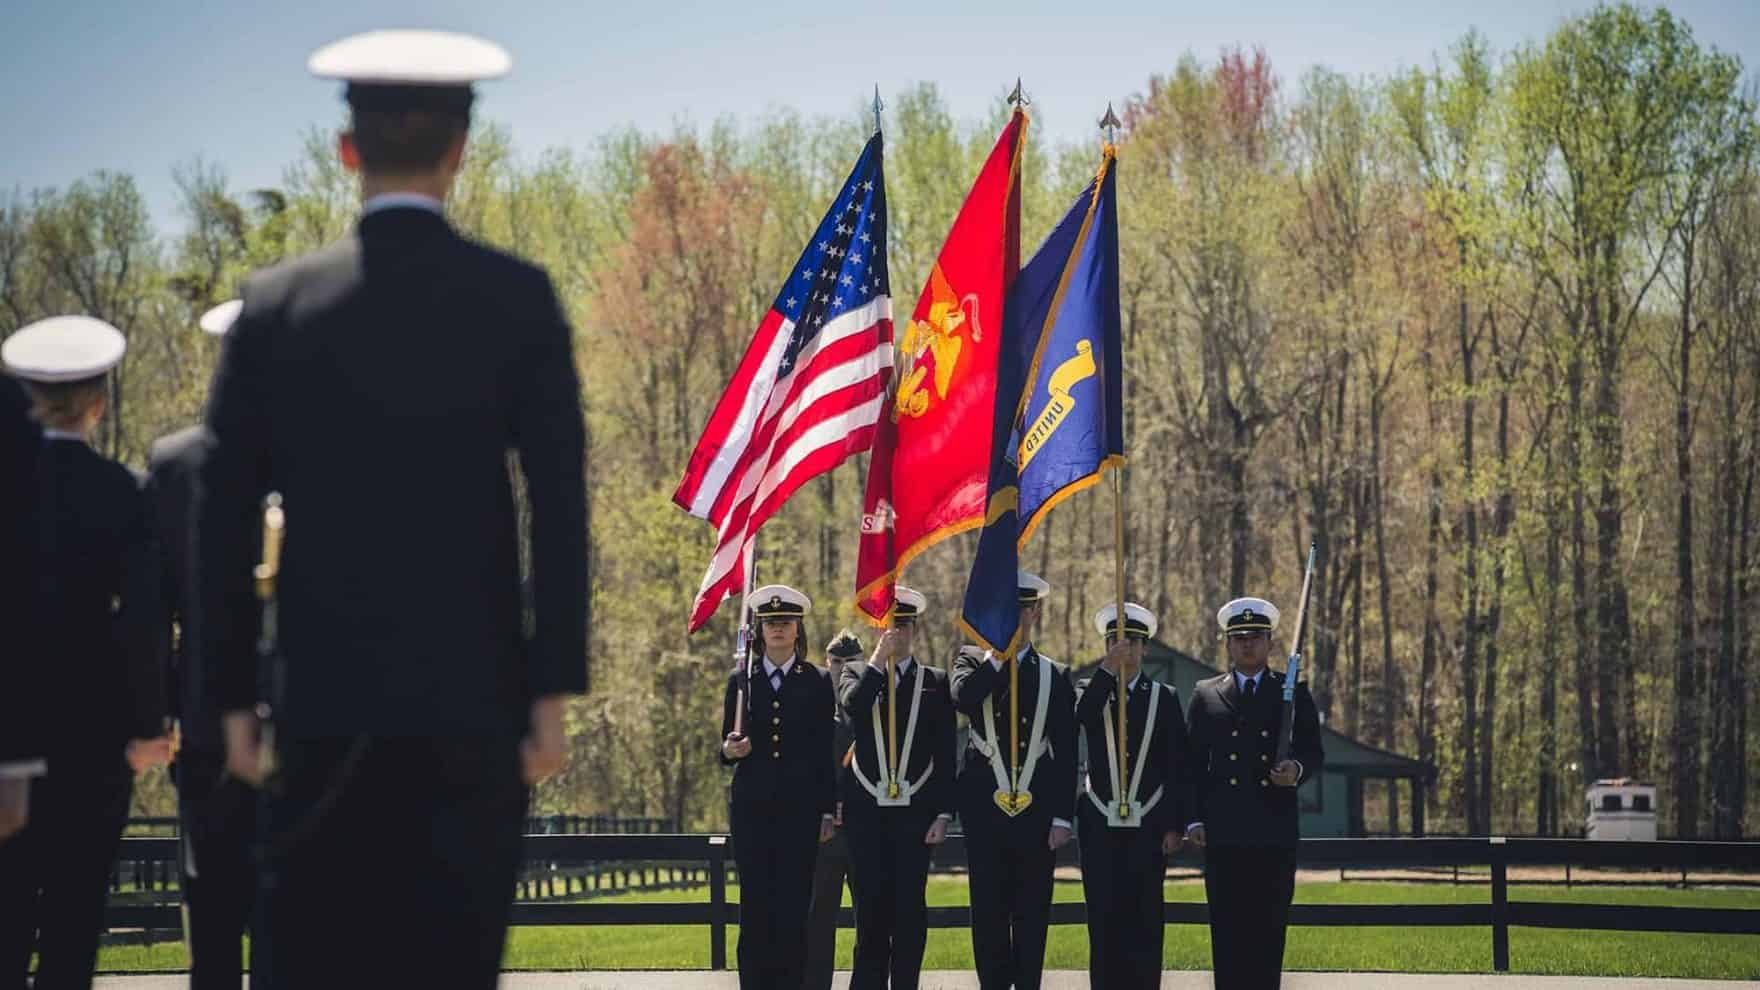 Regent University, Virginia Beach, was named a Top Ten Military Friendly® School by Military Friendly.